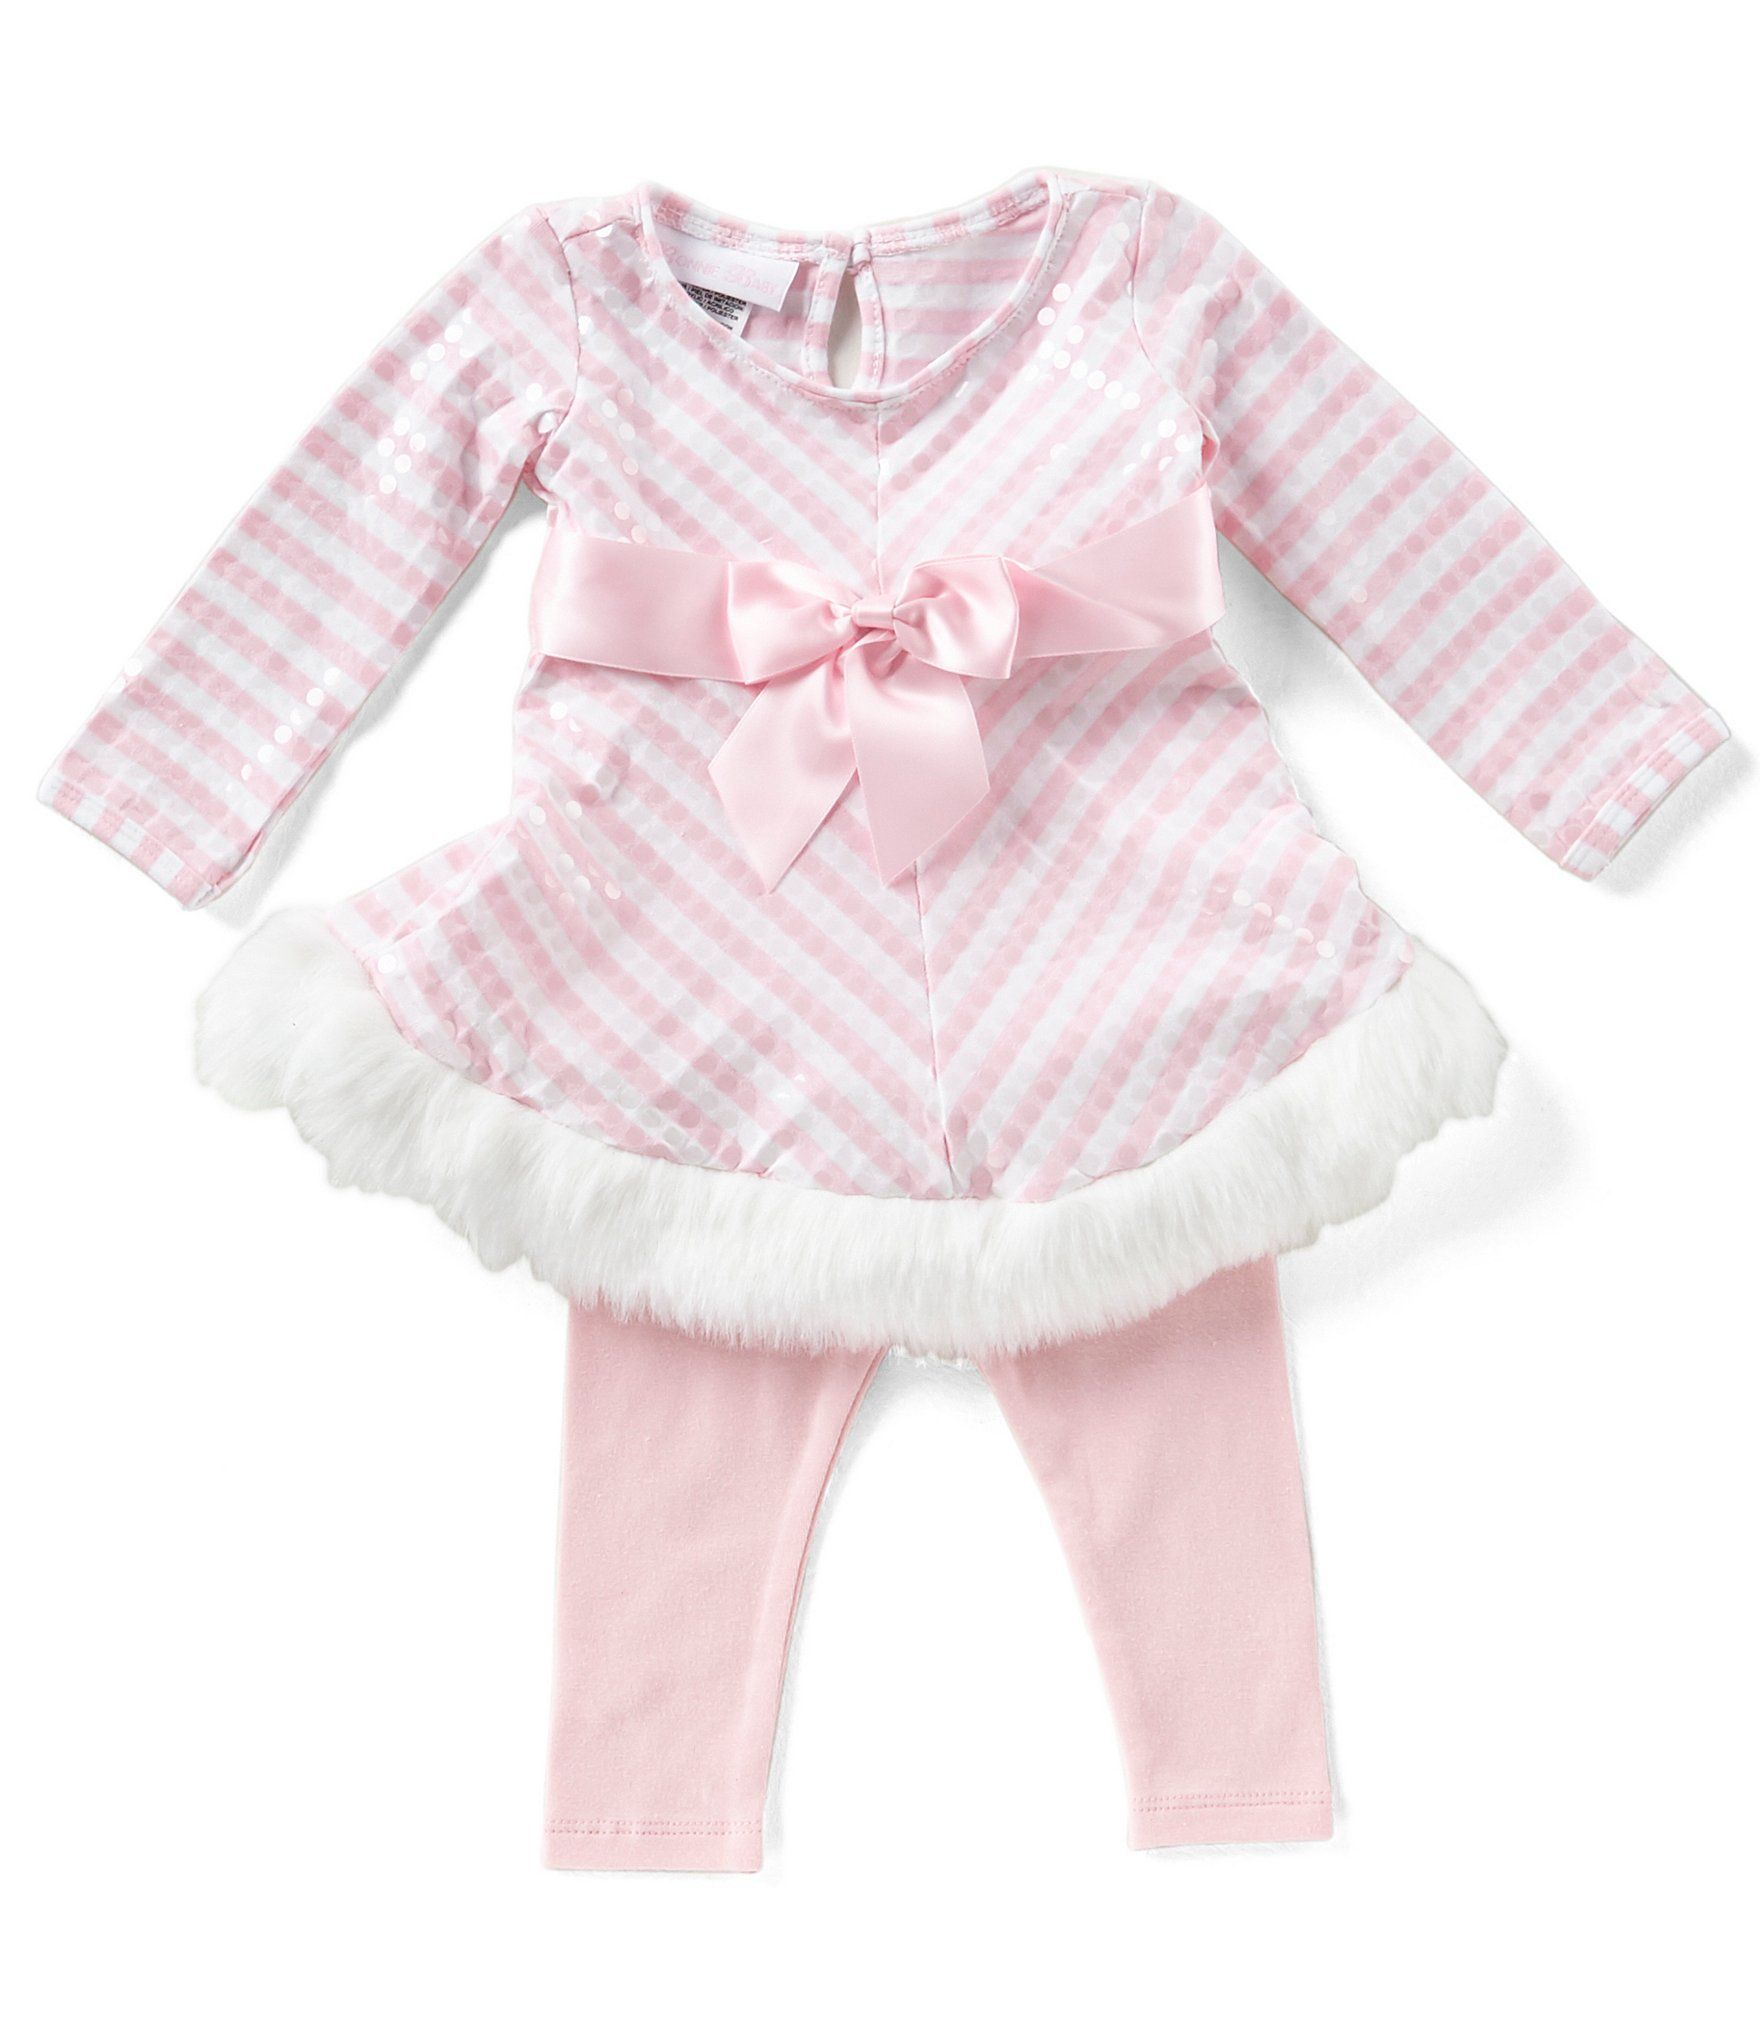 a15a276784d Bonnie Baby Baby Girls Newborn24 Months Striped Santa FitAndFlare Dress and  Solid Leggings Set  Dillards